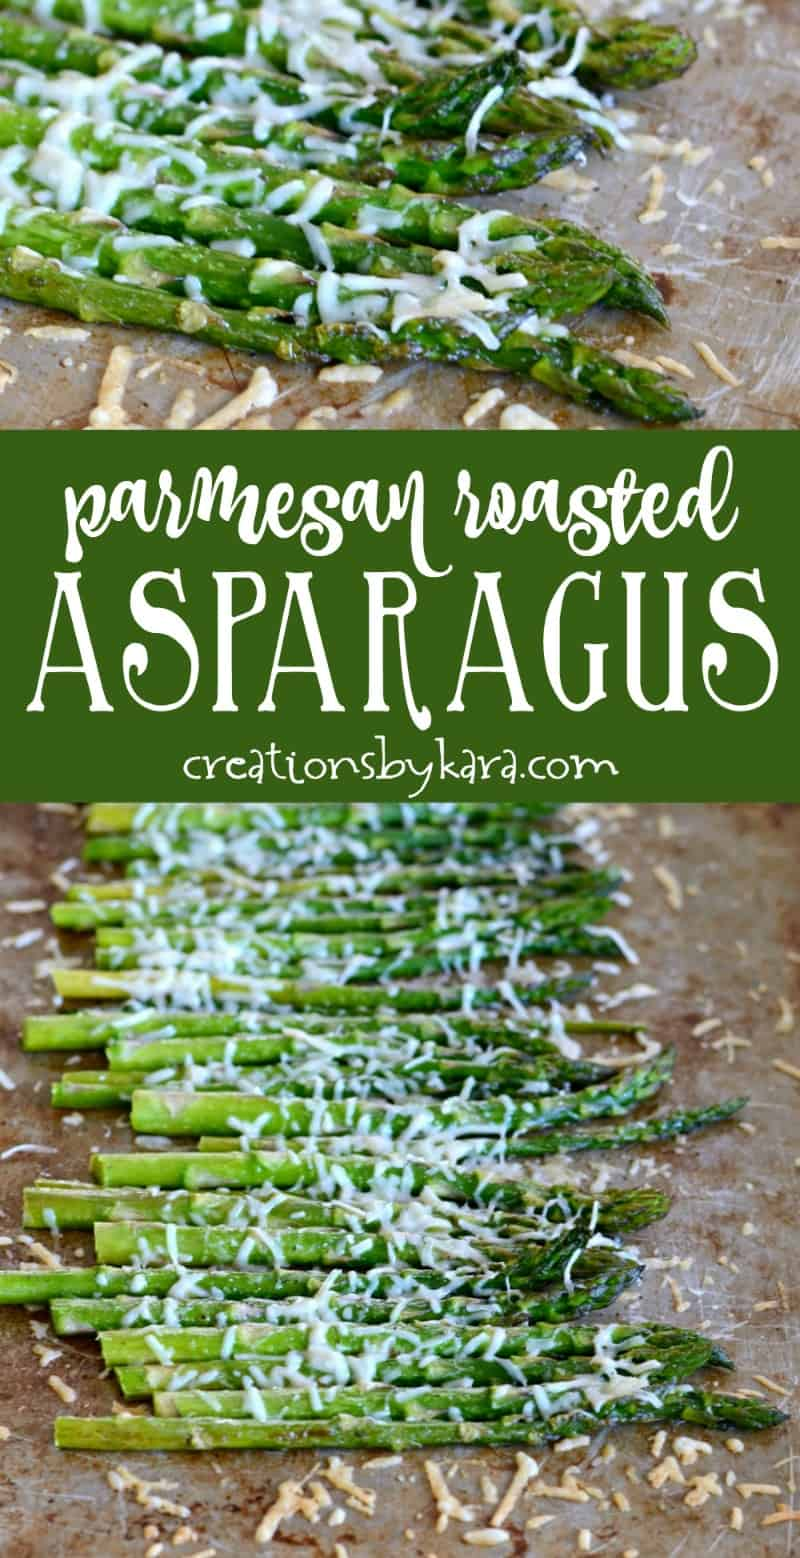 Parmesan Roasted Asparagus - this is the tastiest way to eat asparagus! Even my kids love this asparagus recipe.  | #asparagus #roastedasparagus